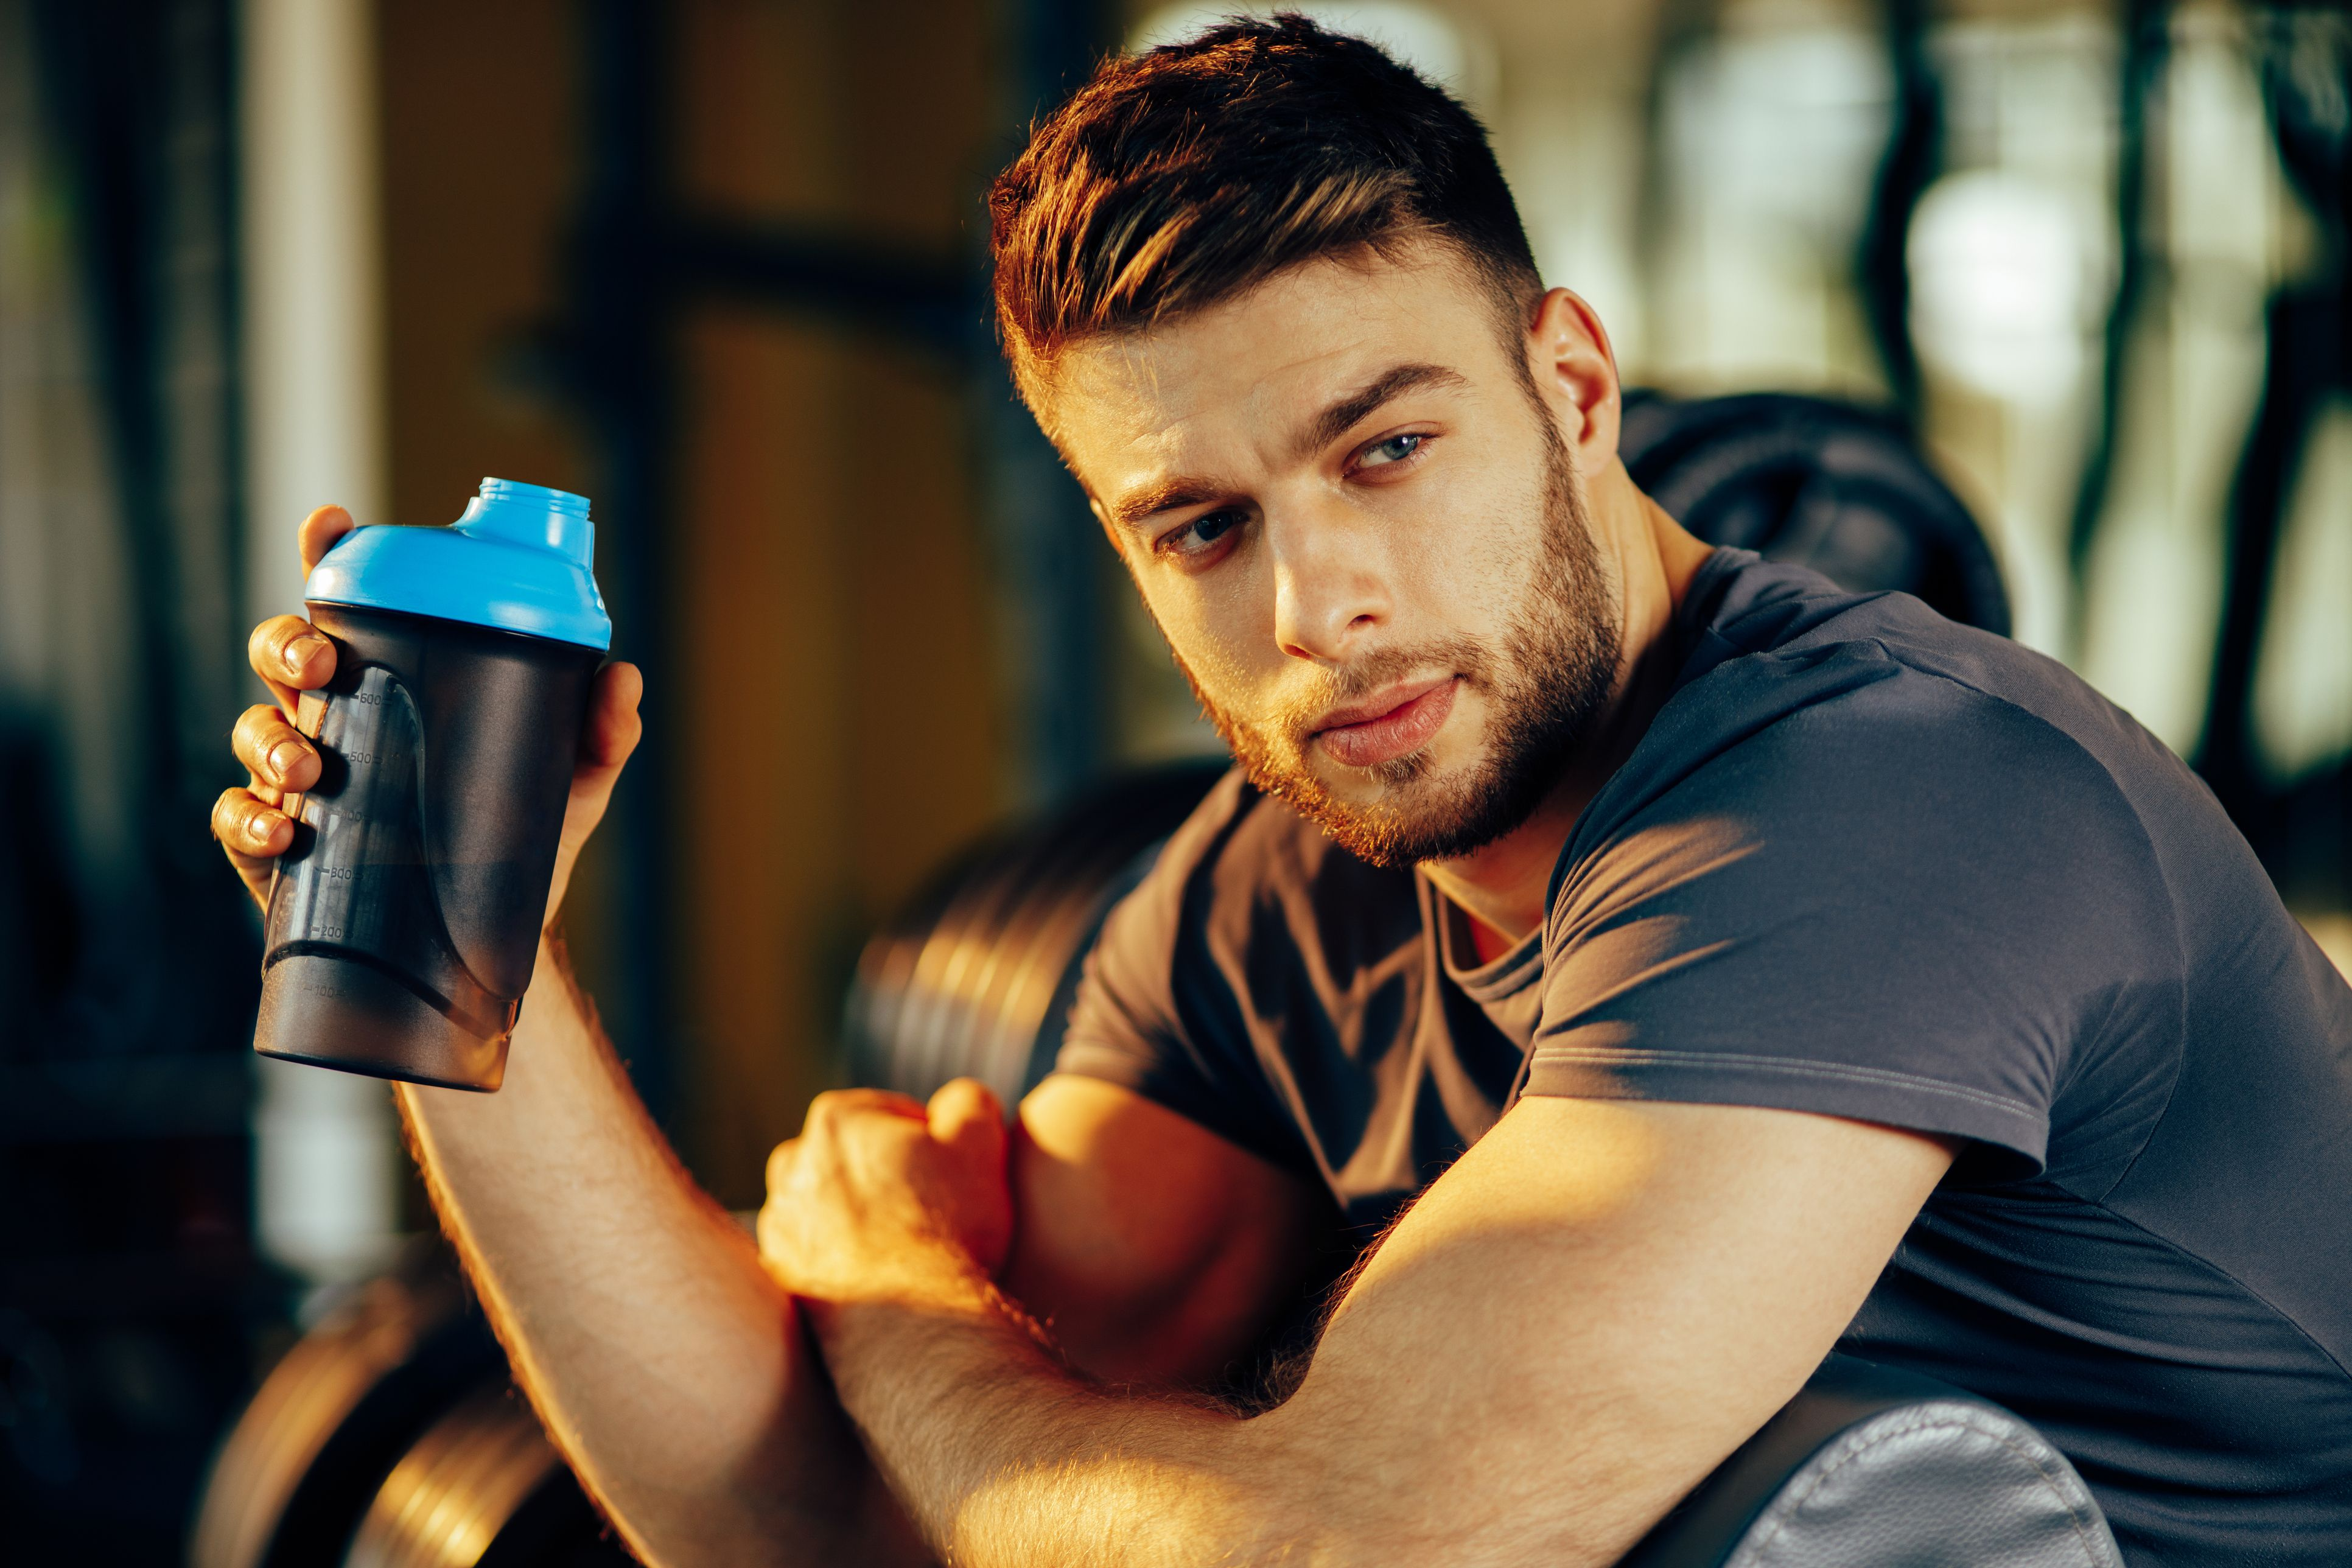 Do you take whey protein before or after a workout